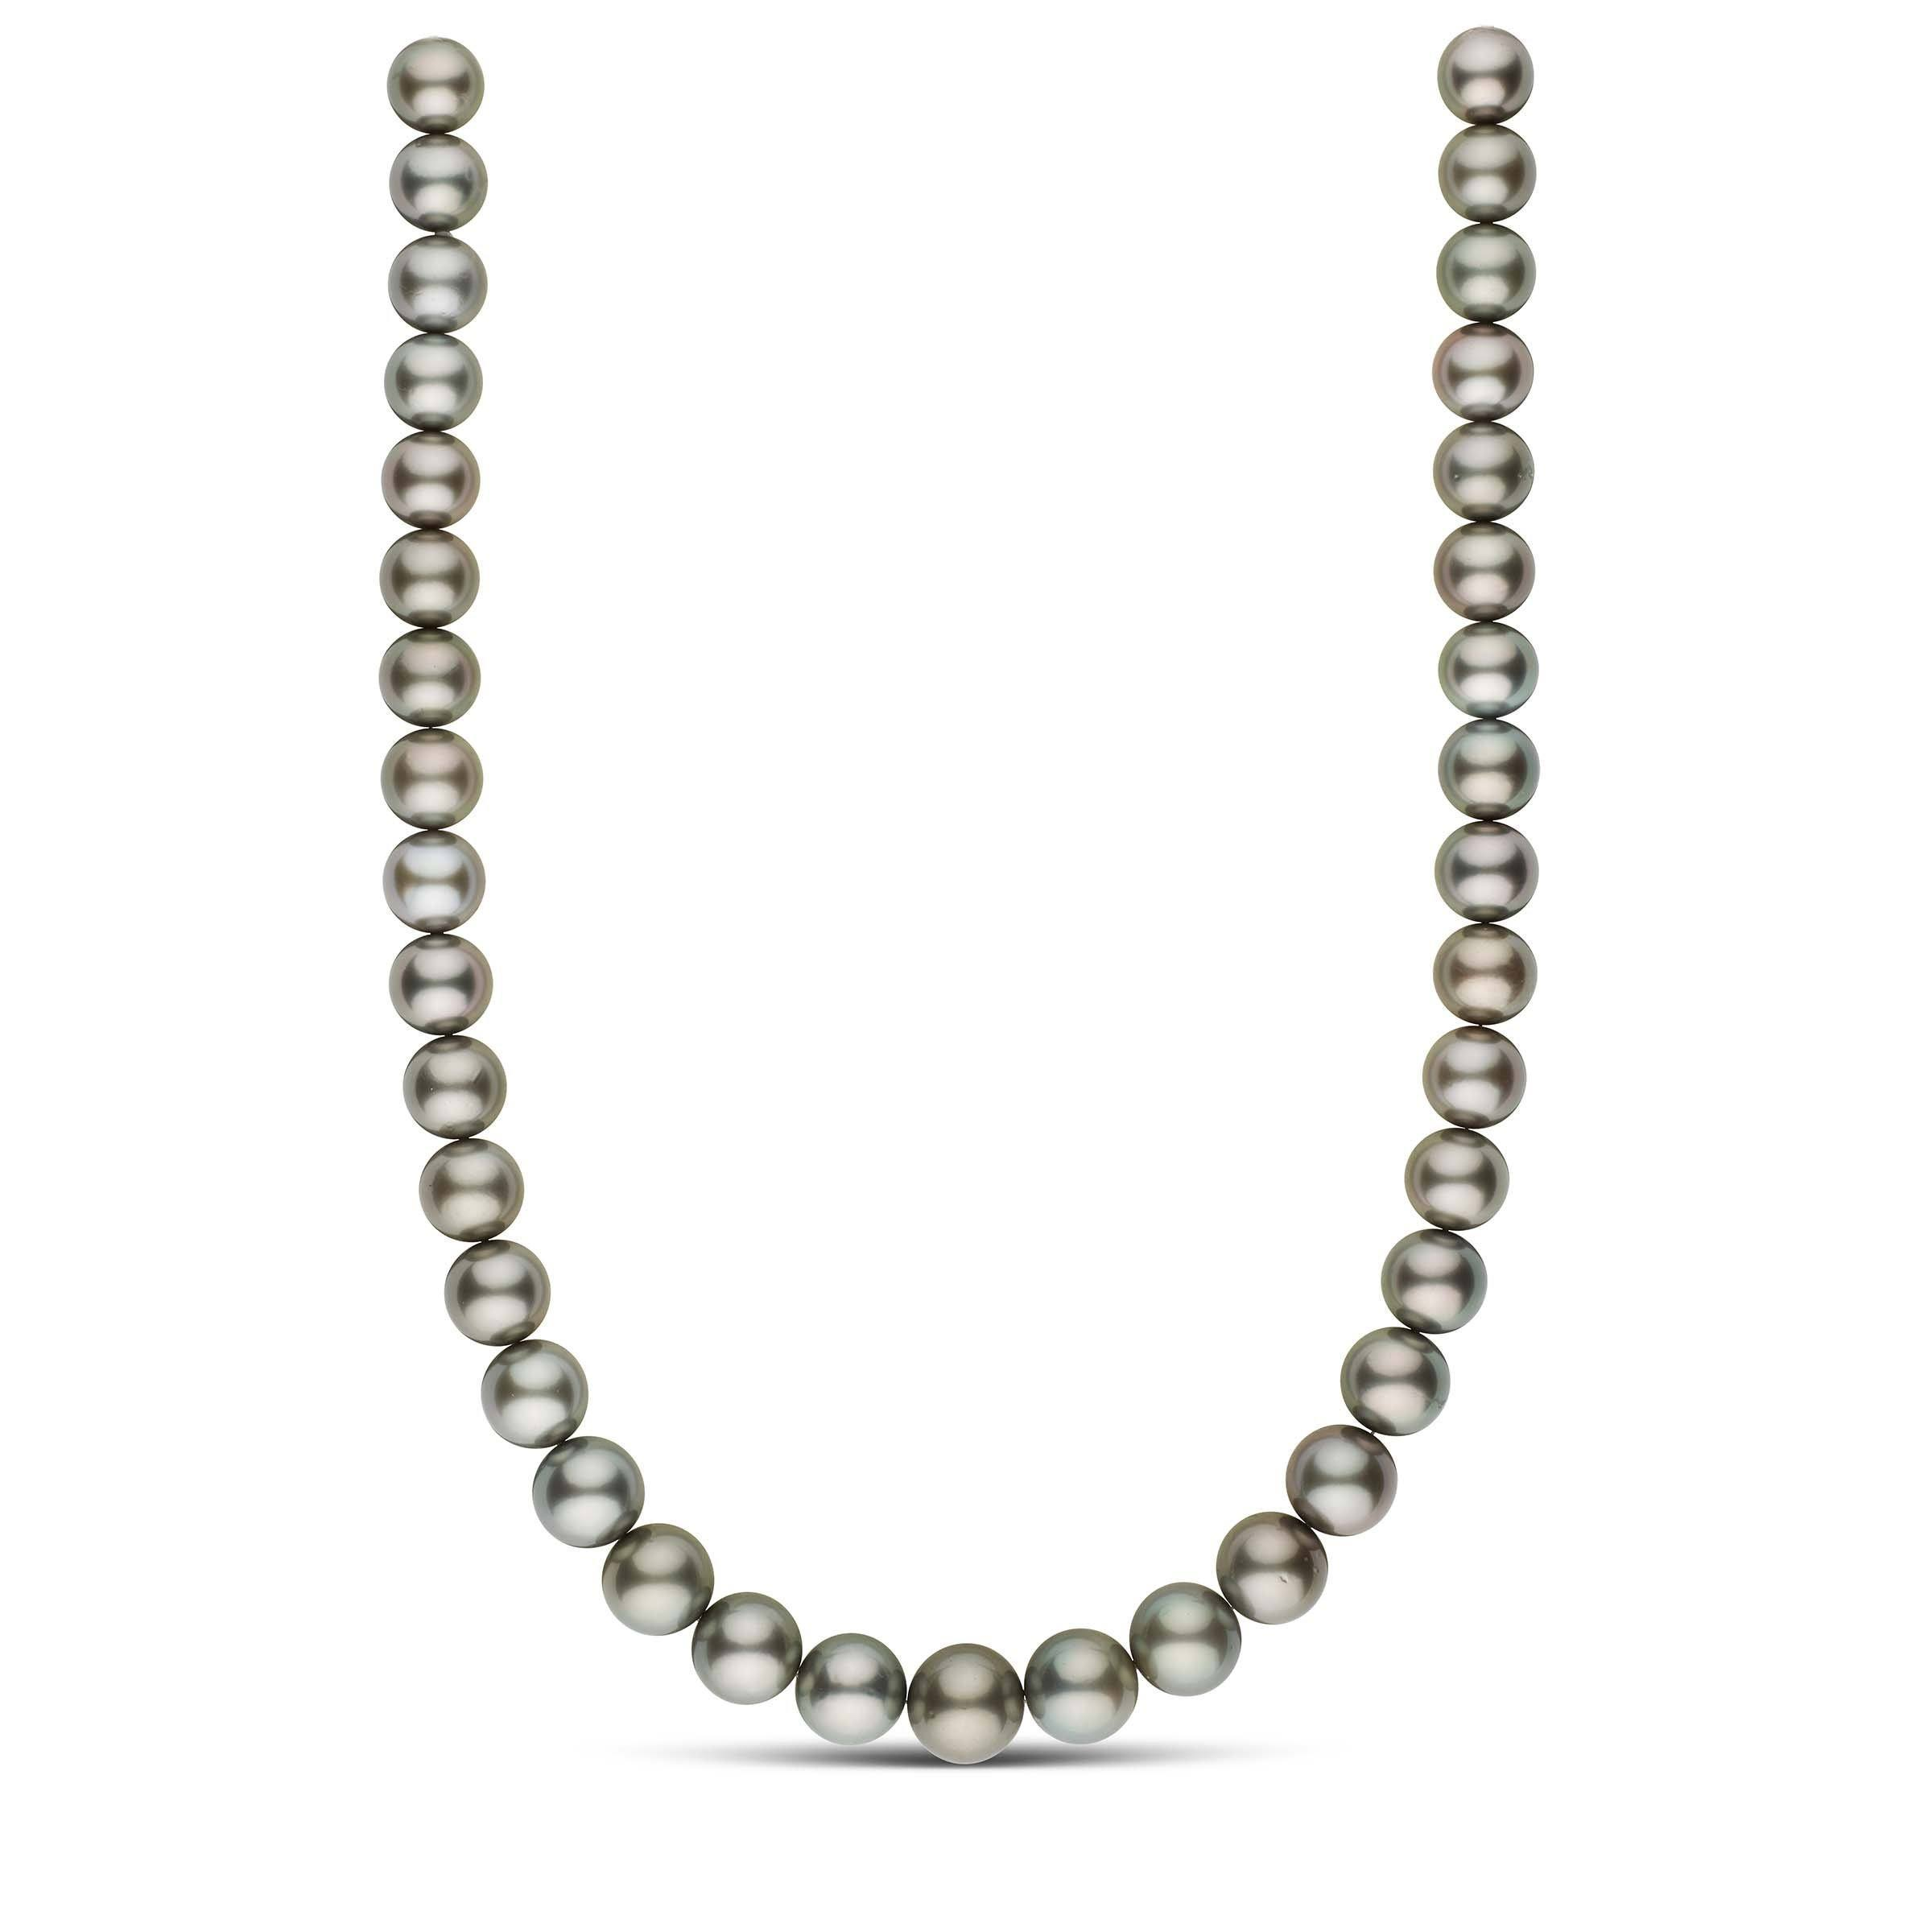 18-inch 11.0-13.3 mm AA+/AAA Round Tahitian Pearl Necklace